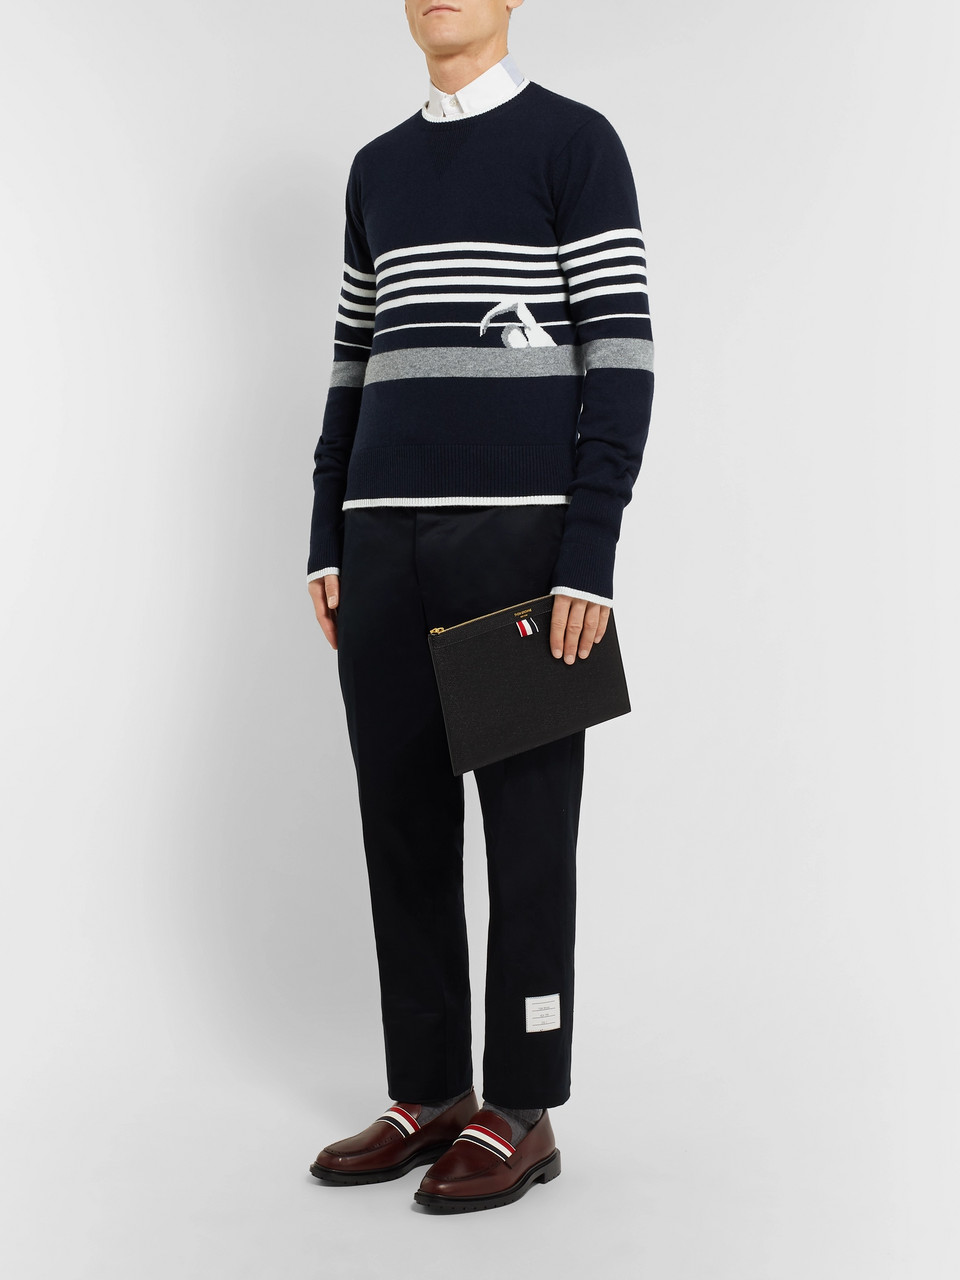 8377c520ce6f Thom Browne Striped Intarsia Cashmere Sweater